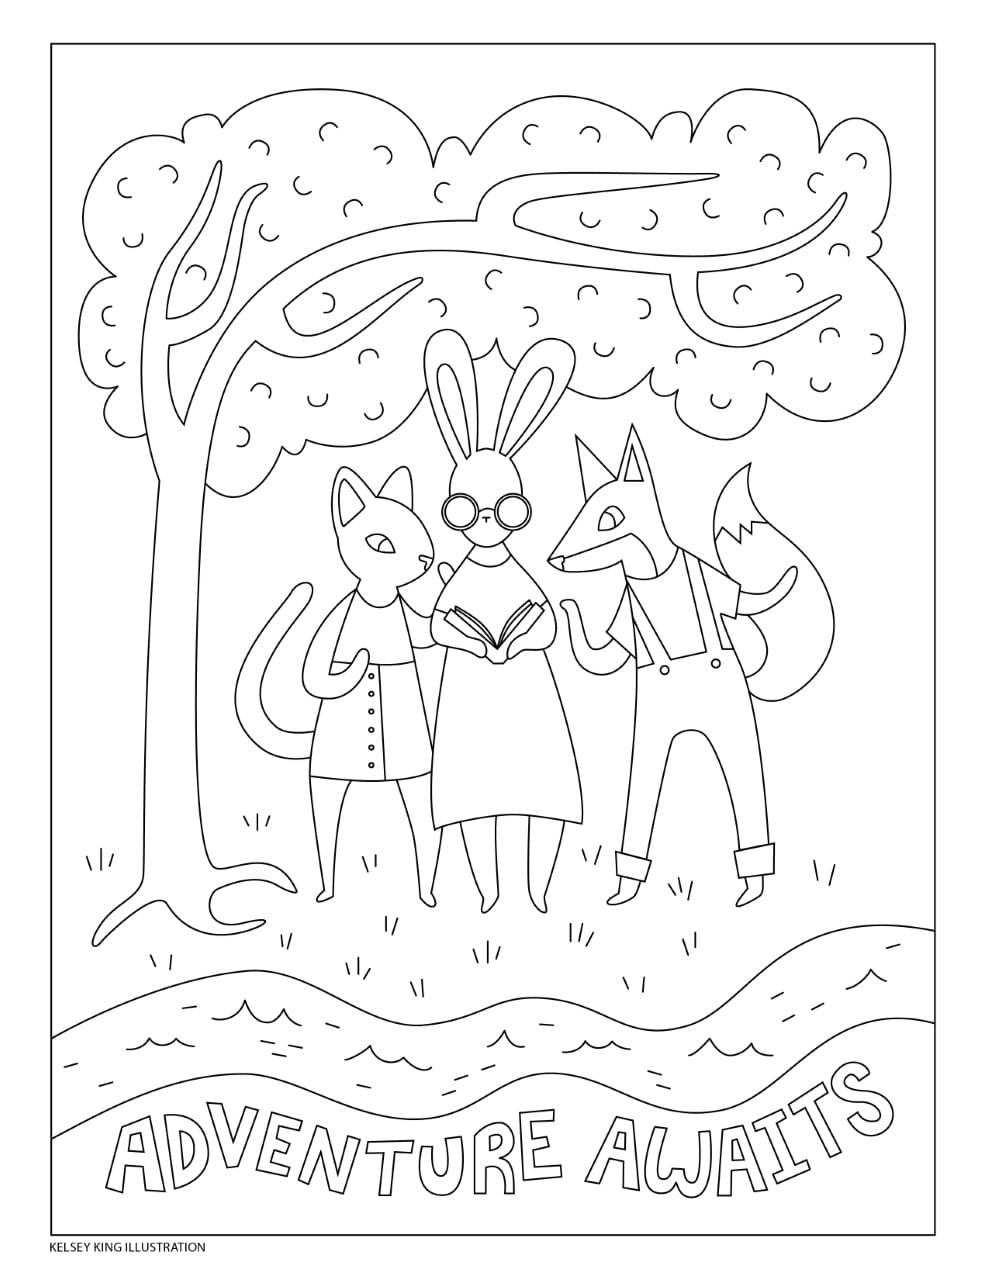 Coloring Pages From A Local Artist Minnesota Children S Museum